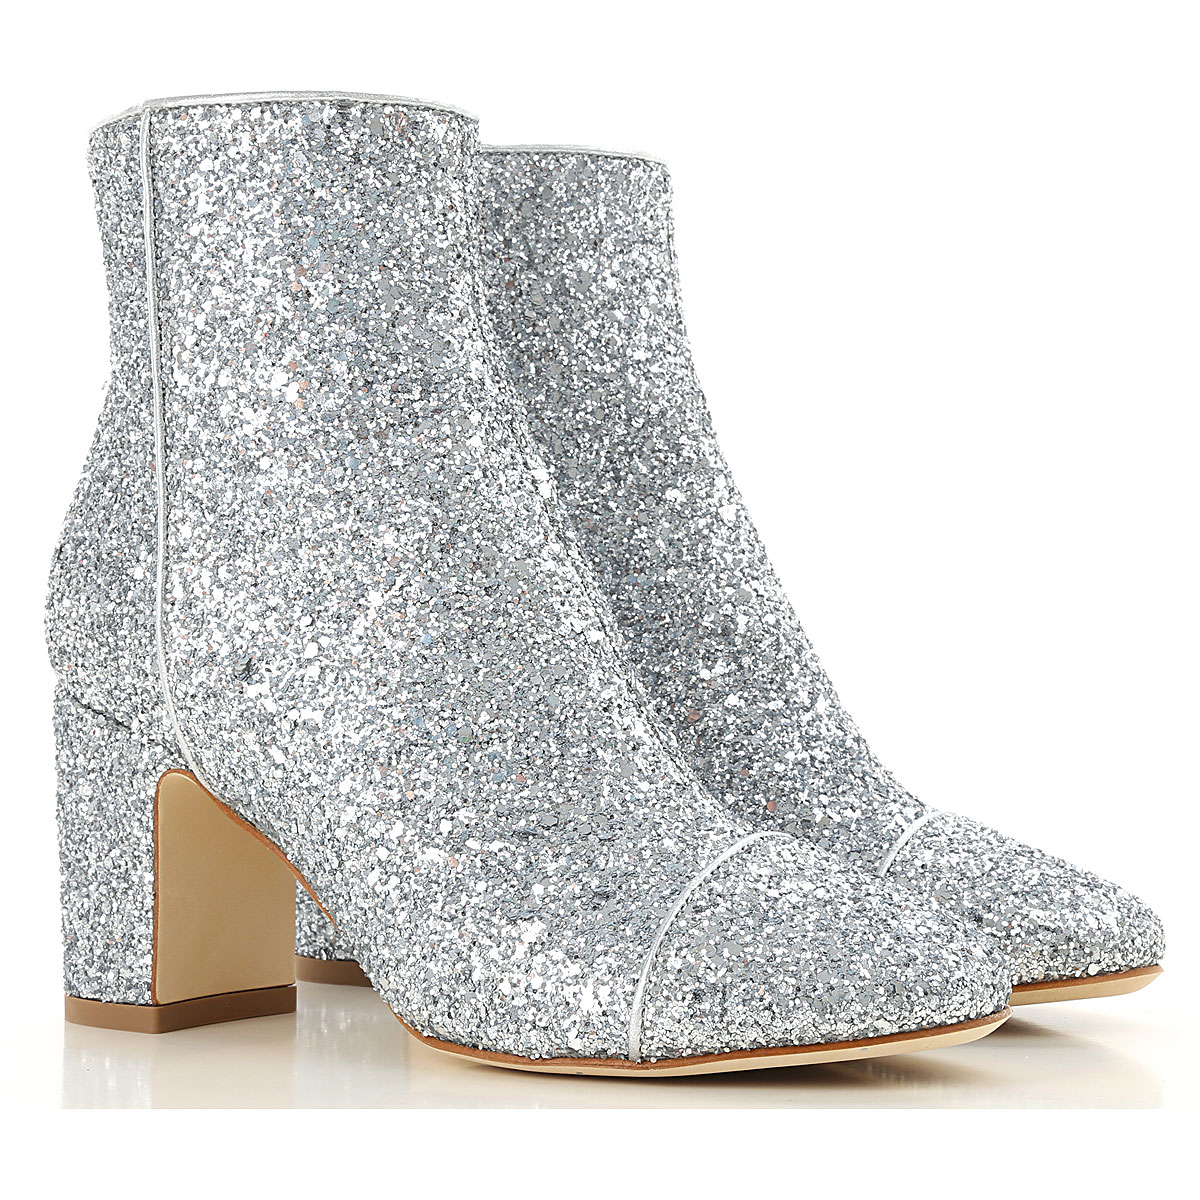 Image of Polly Plume Boots for Women, Booties, Silver, Glitter, 2017, 10 6 7 8 9